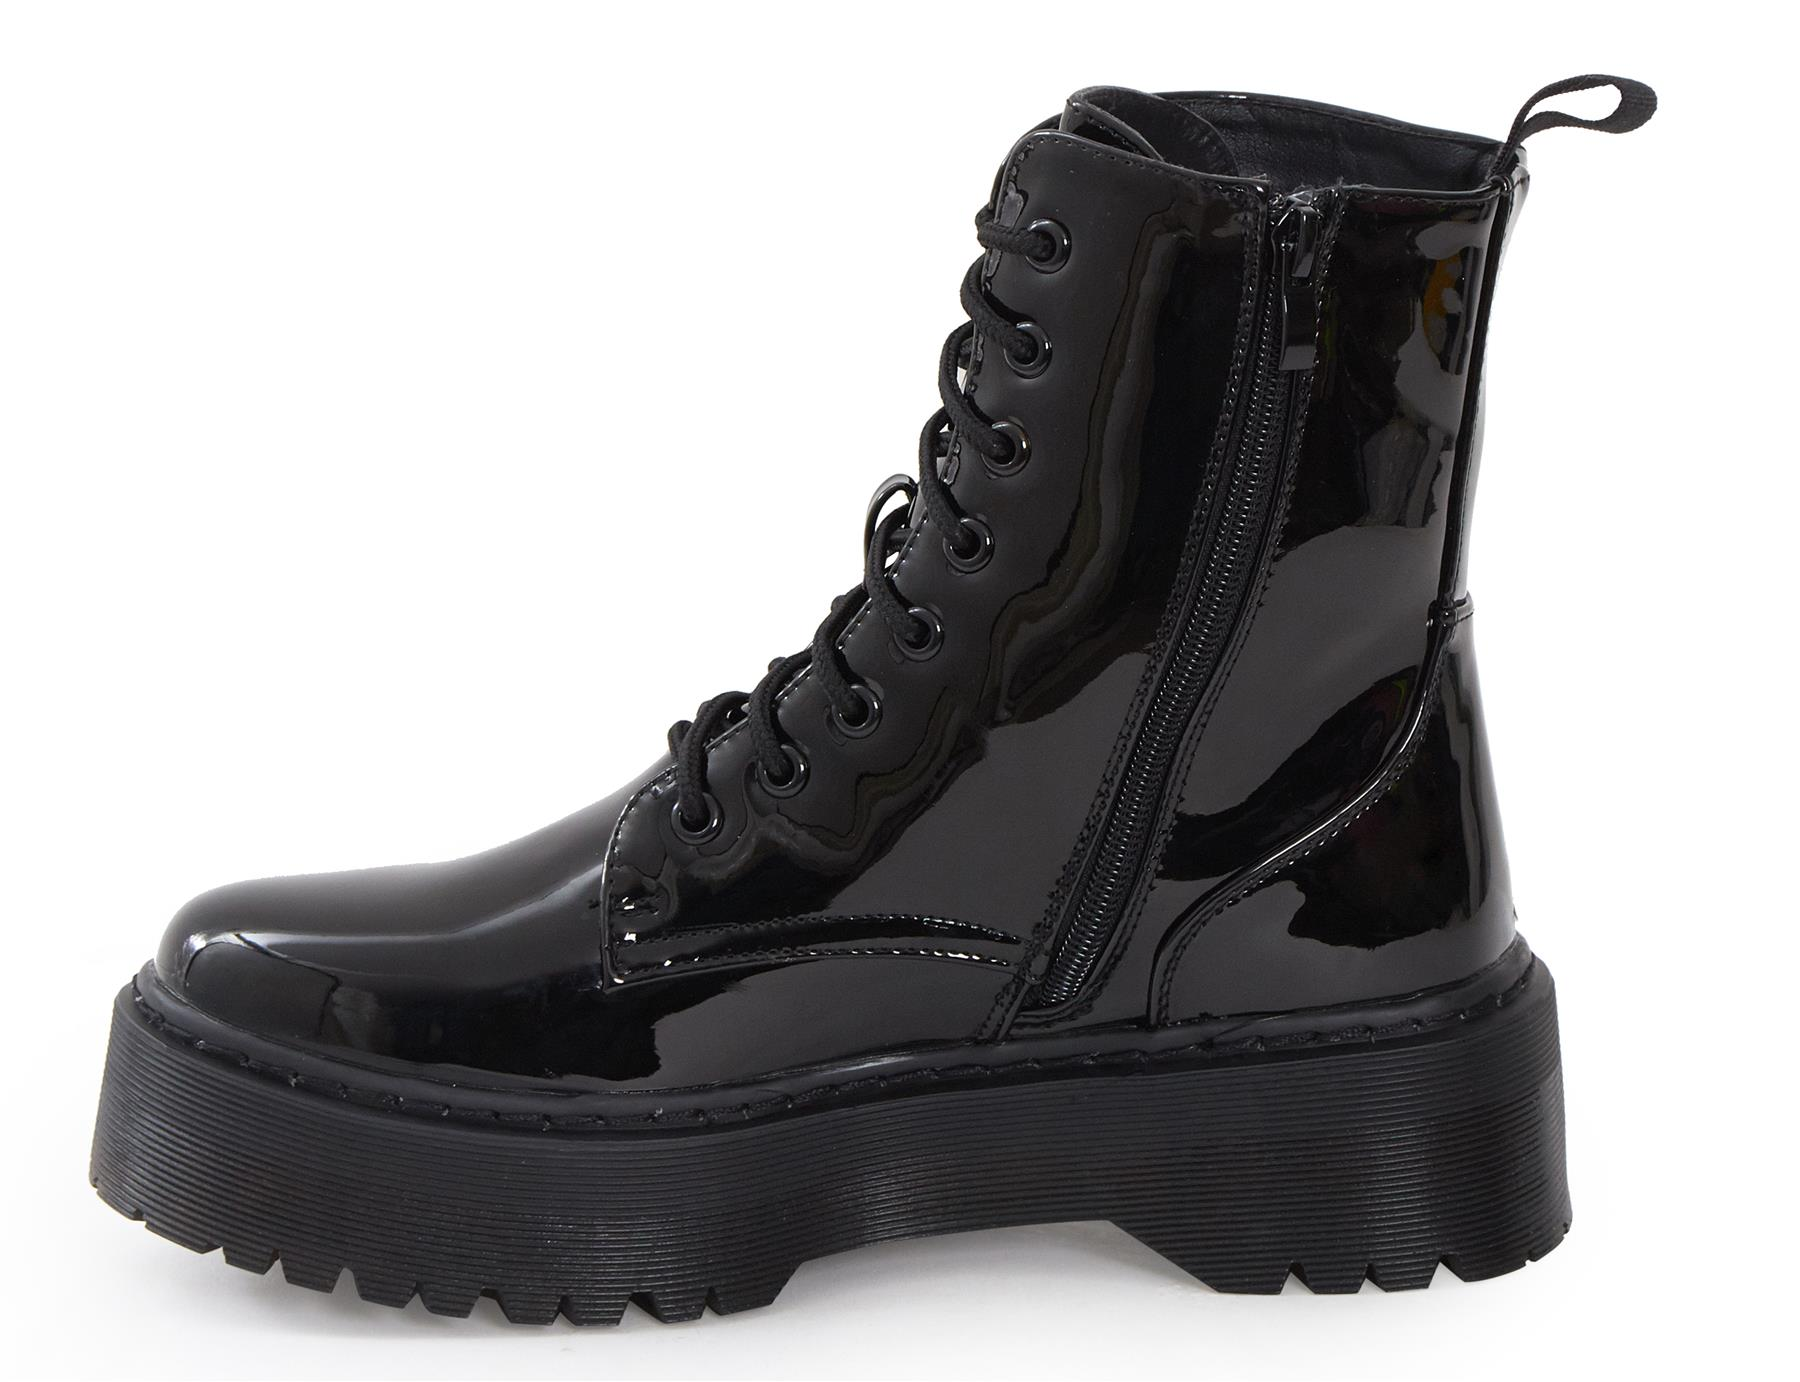 Womens-HiTop-Platform-Military-Punk-Biker-Ankle-PU-Leather-Lace-Up-Vintage-Boots thumbnail 5